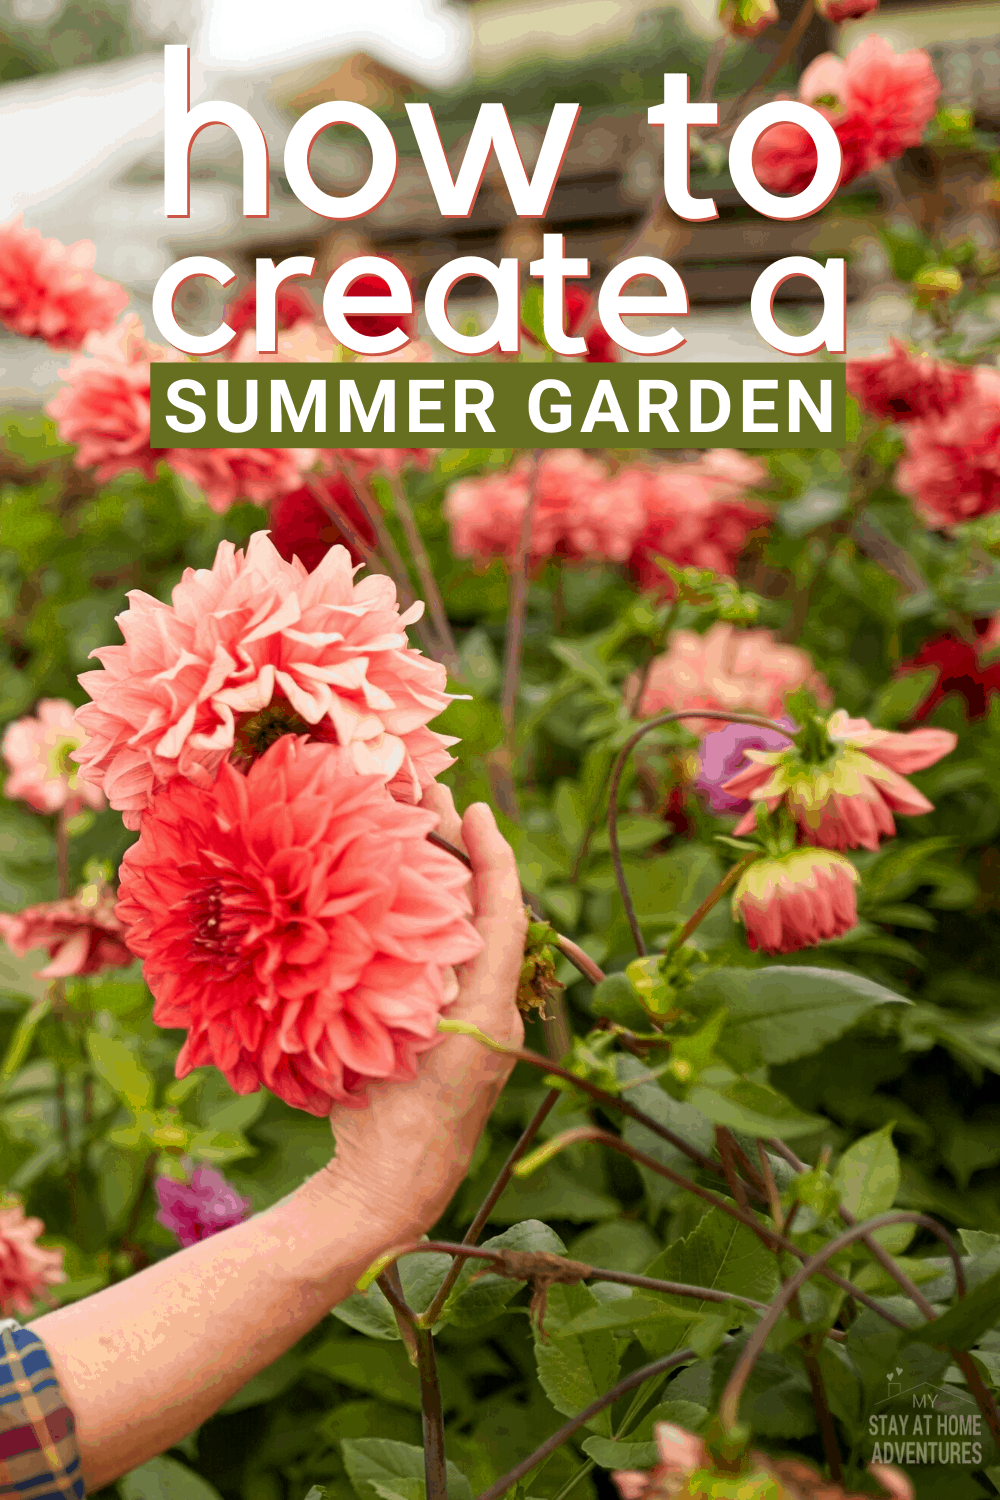 If you are thinking of starting a summer garden, then follow these steps. Find out how you can create a summer garden on a budget today. #garden #gardeningtips #howto #organicgarden #summergarden #springgarden via @mystayathome